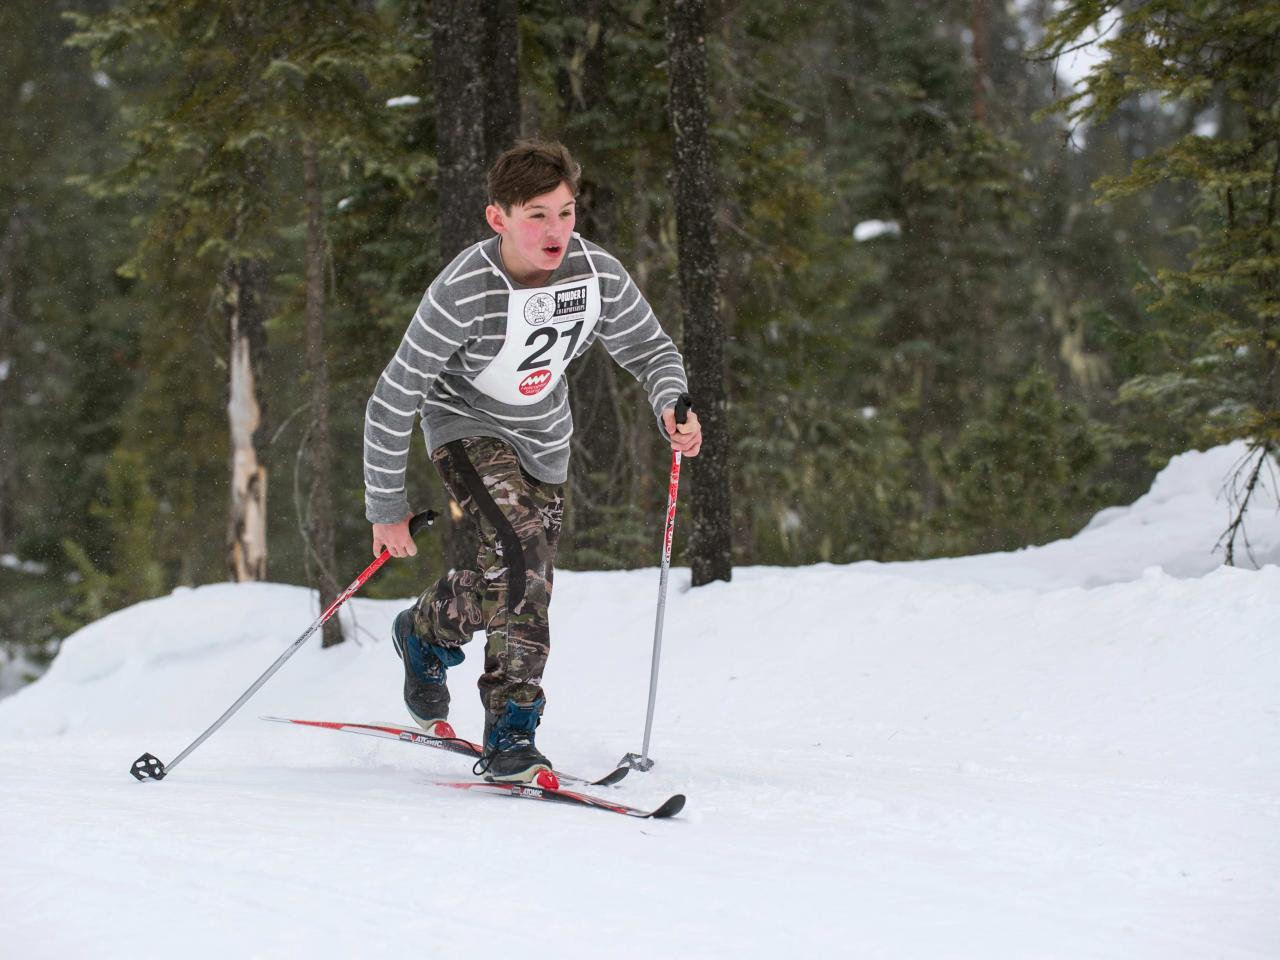 Kids X Country Ski Race